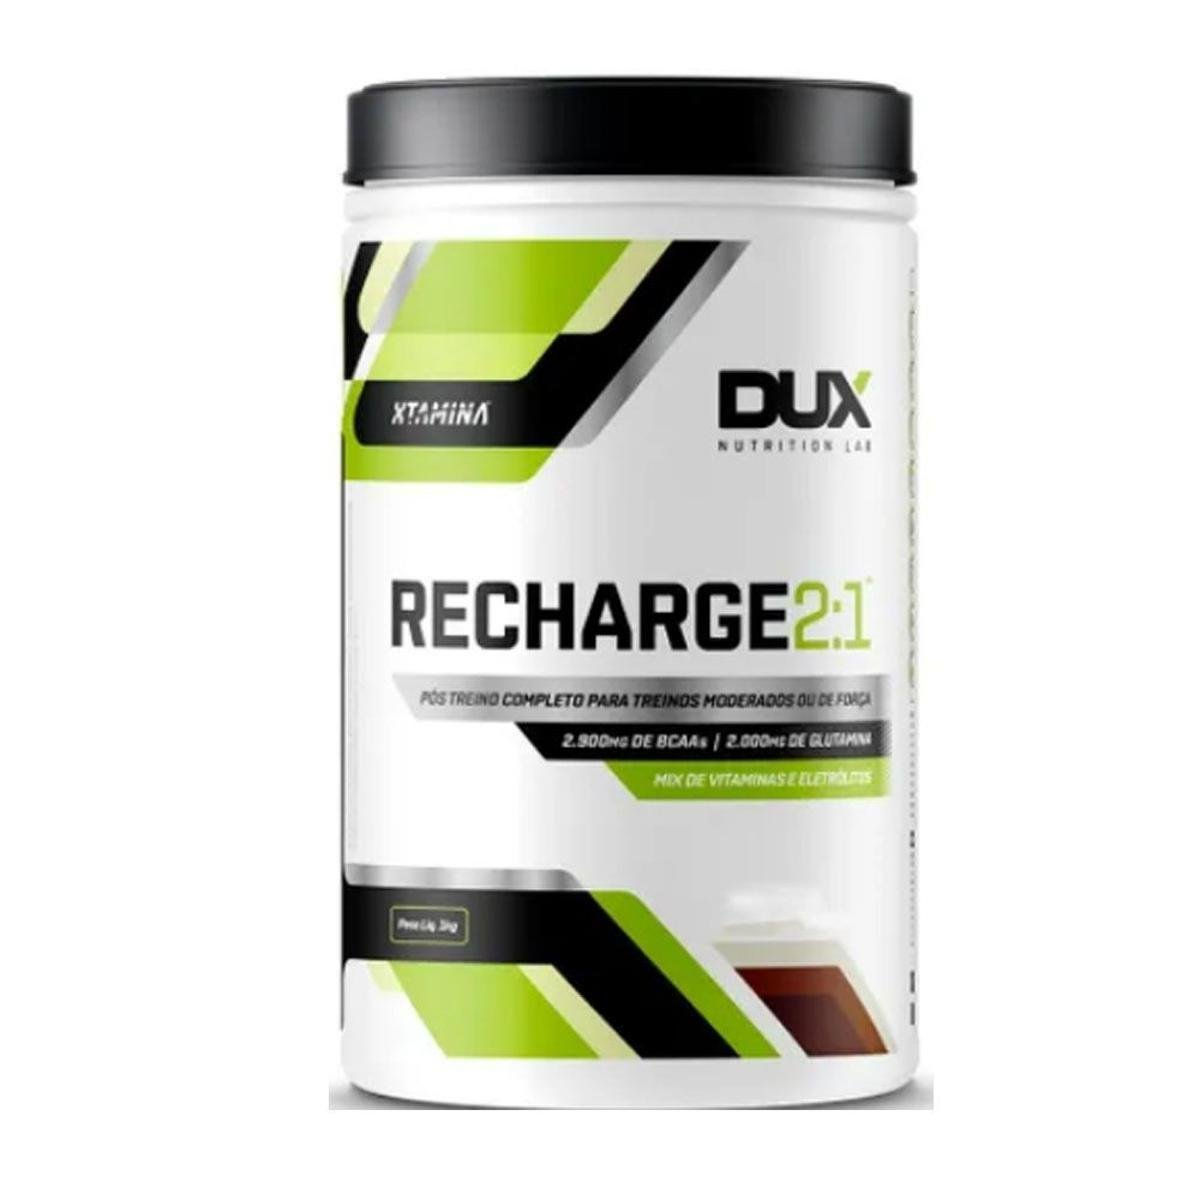 Recharge 4:1 Abacaxi - Pote 1000g DUX NUTRITION